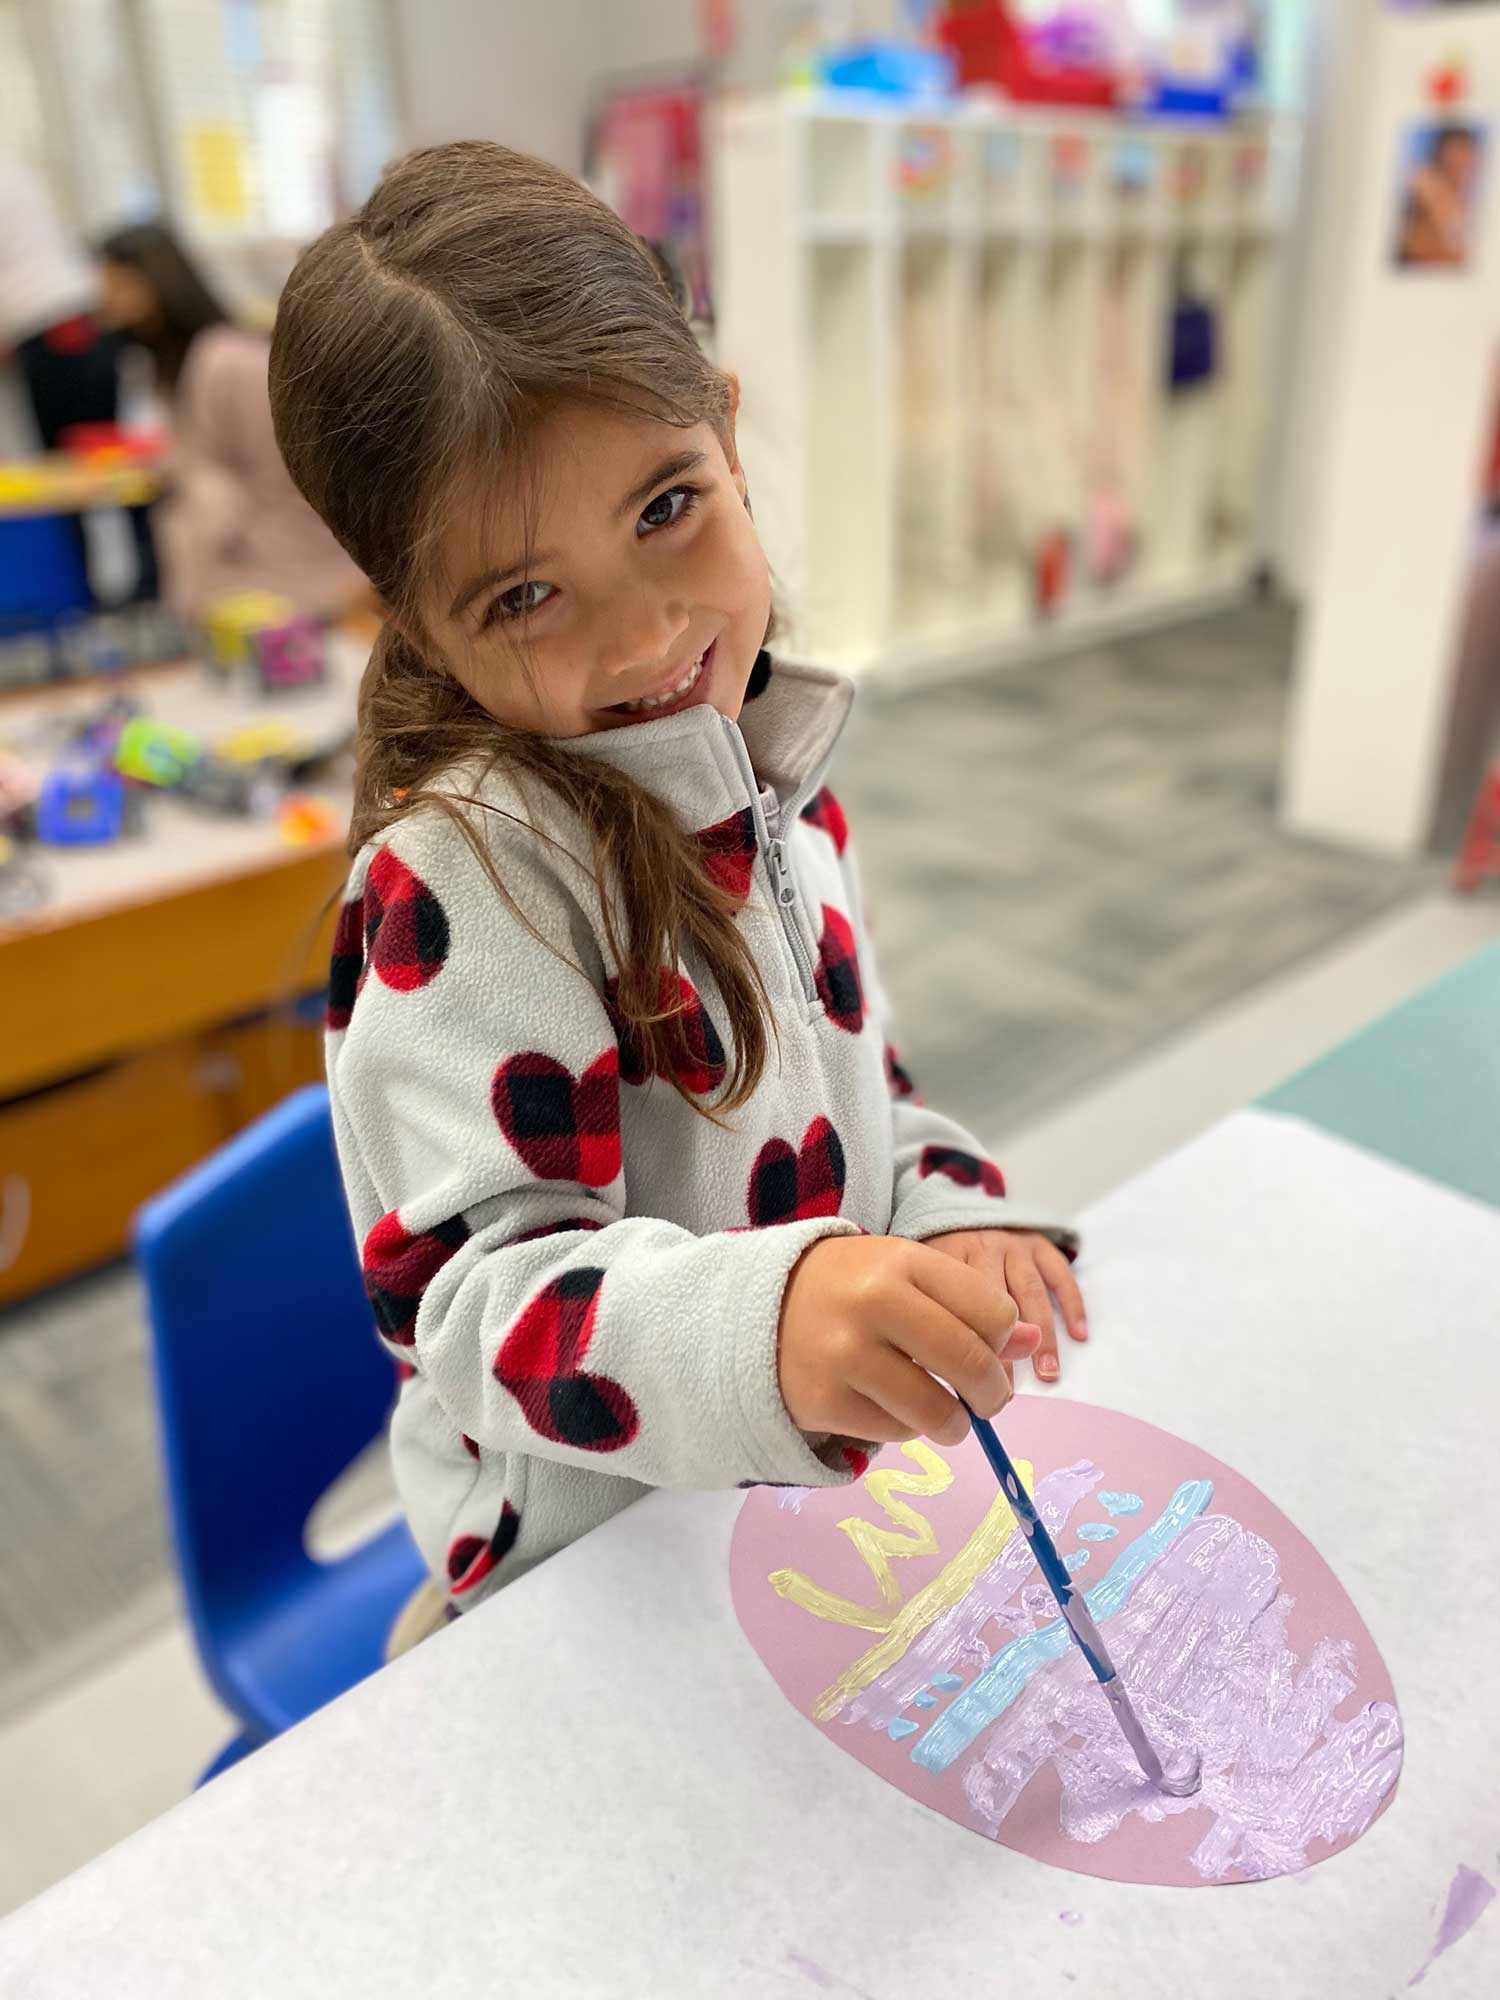 Smiling Girl Painting a Paper Easter Egg